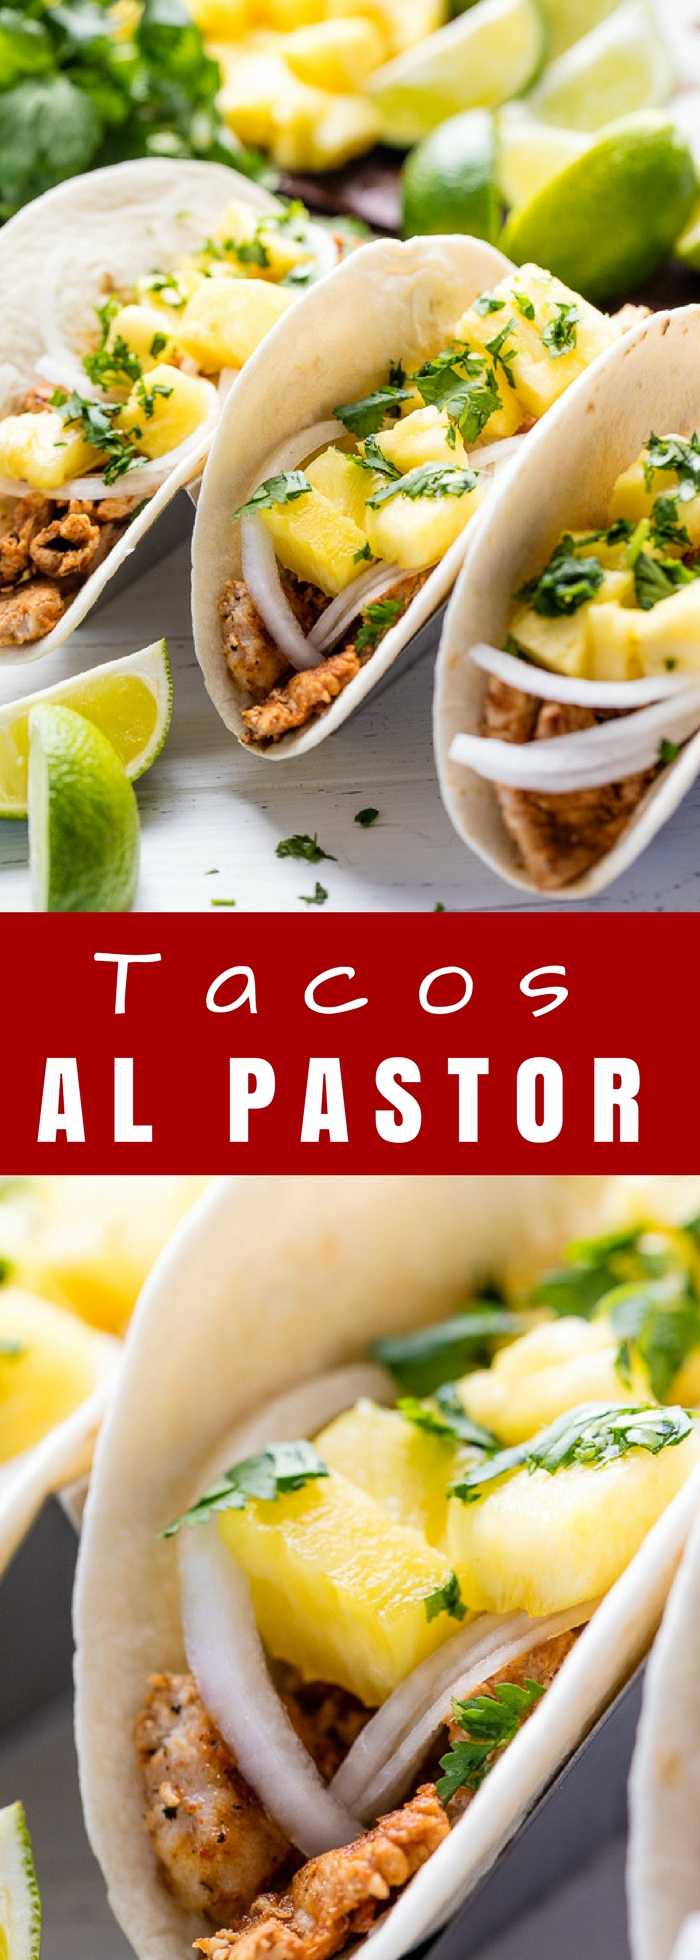 Tacos Al Pastor are thinly sliced pieces of marinated pork that make for the best taco. Serve them up with some sliced onion, pineapple, and cilantro and you have yourself a fantastic dinner your family will devour.